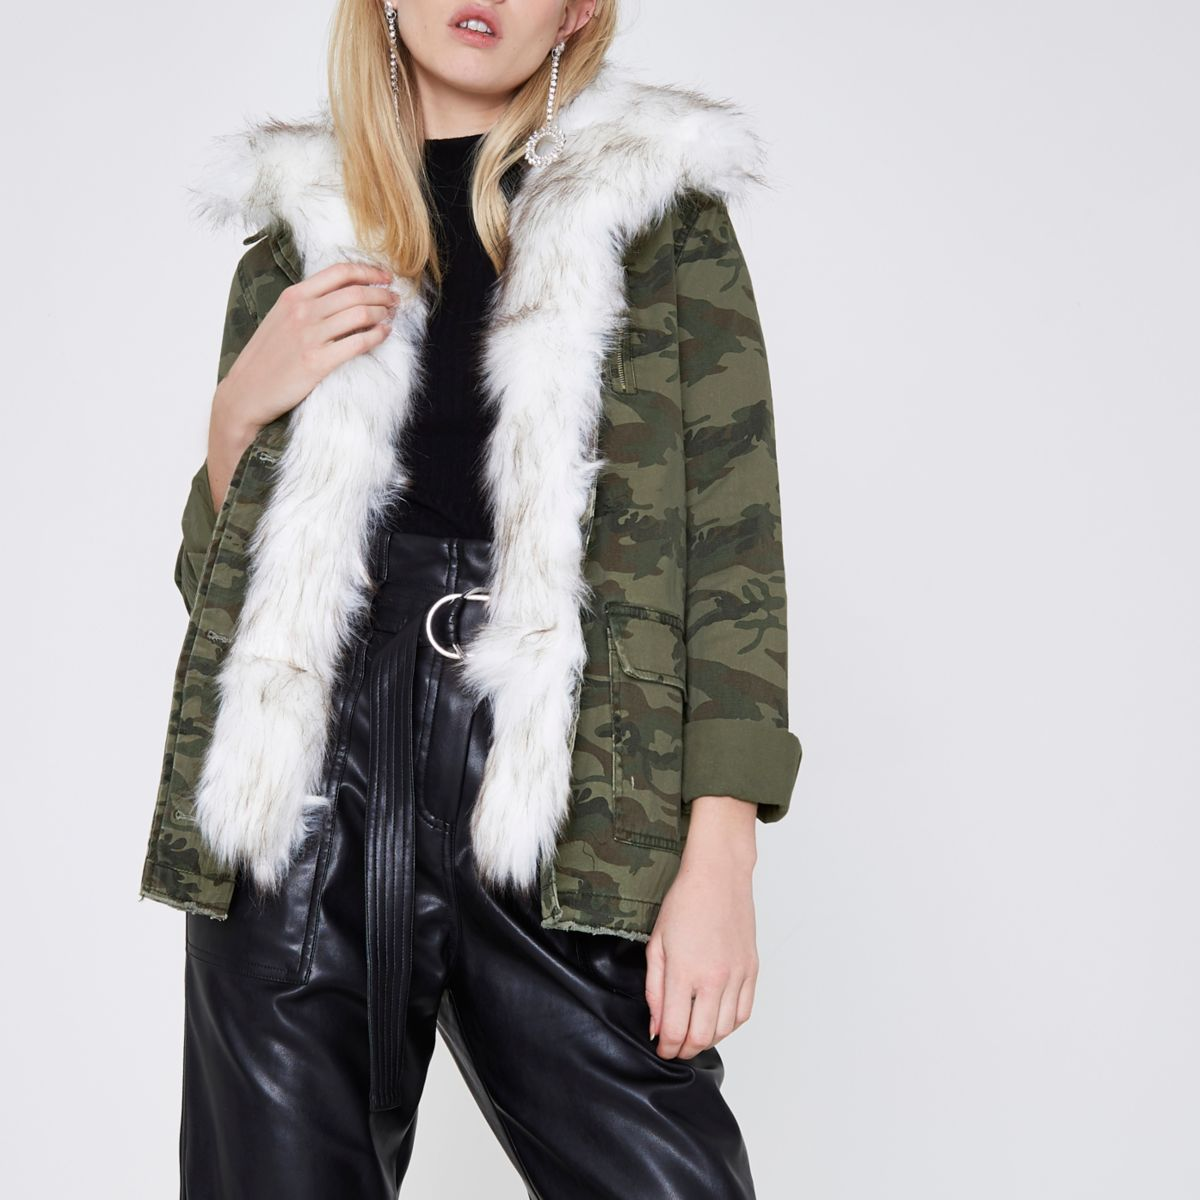 Shop for military jacket at free-desktop-stripper.ml Free Shipping. Free Returns. All the time.